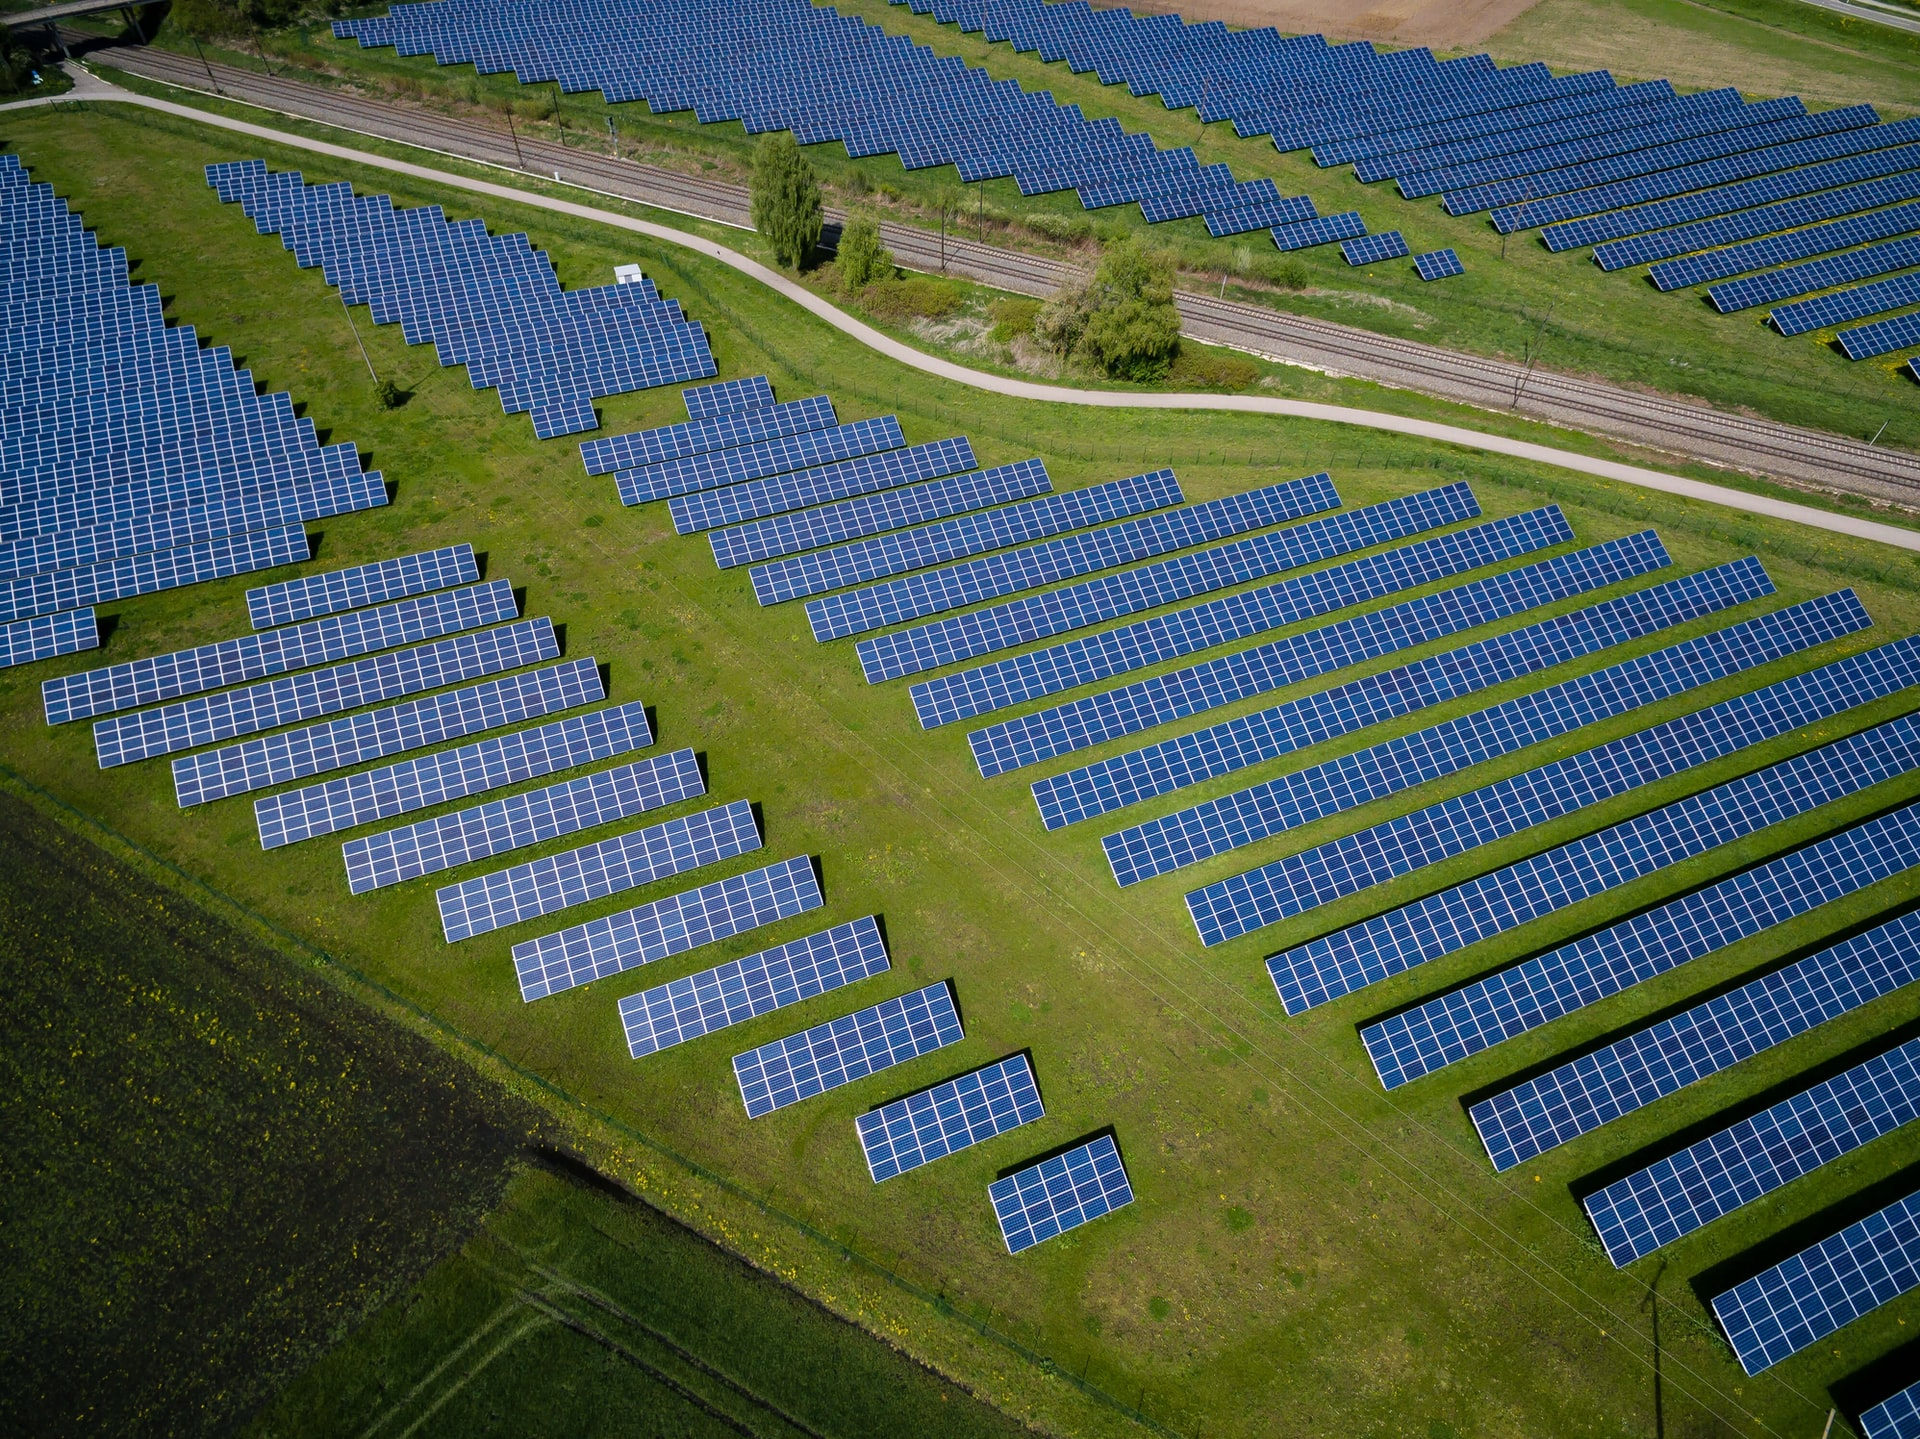 Australian outback cattle station to house world's largest solar farm, powering Singapore